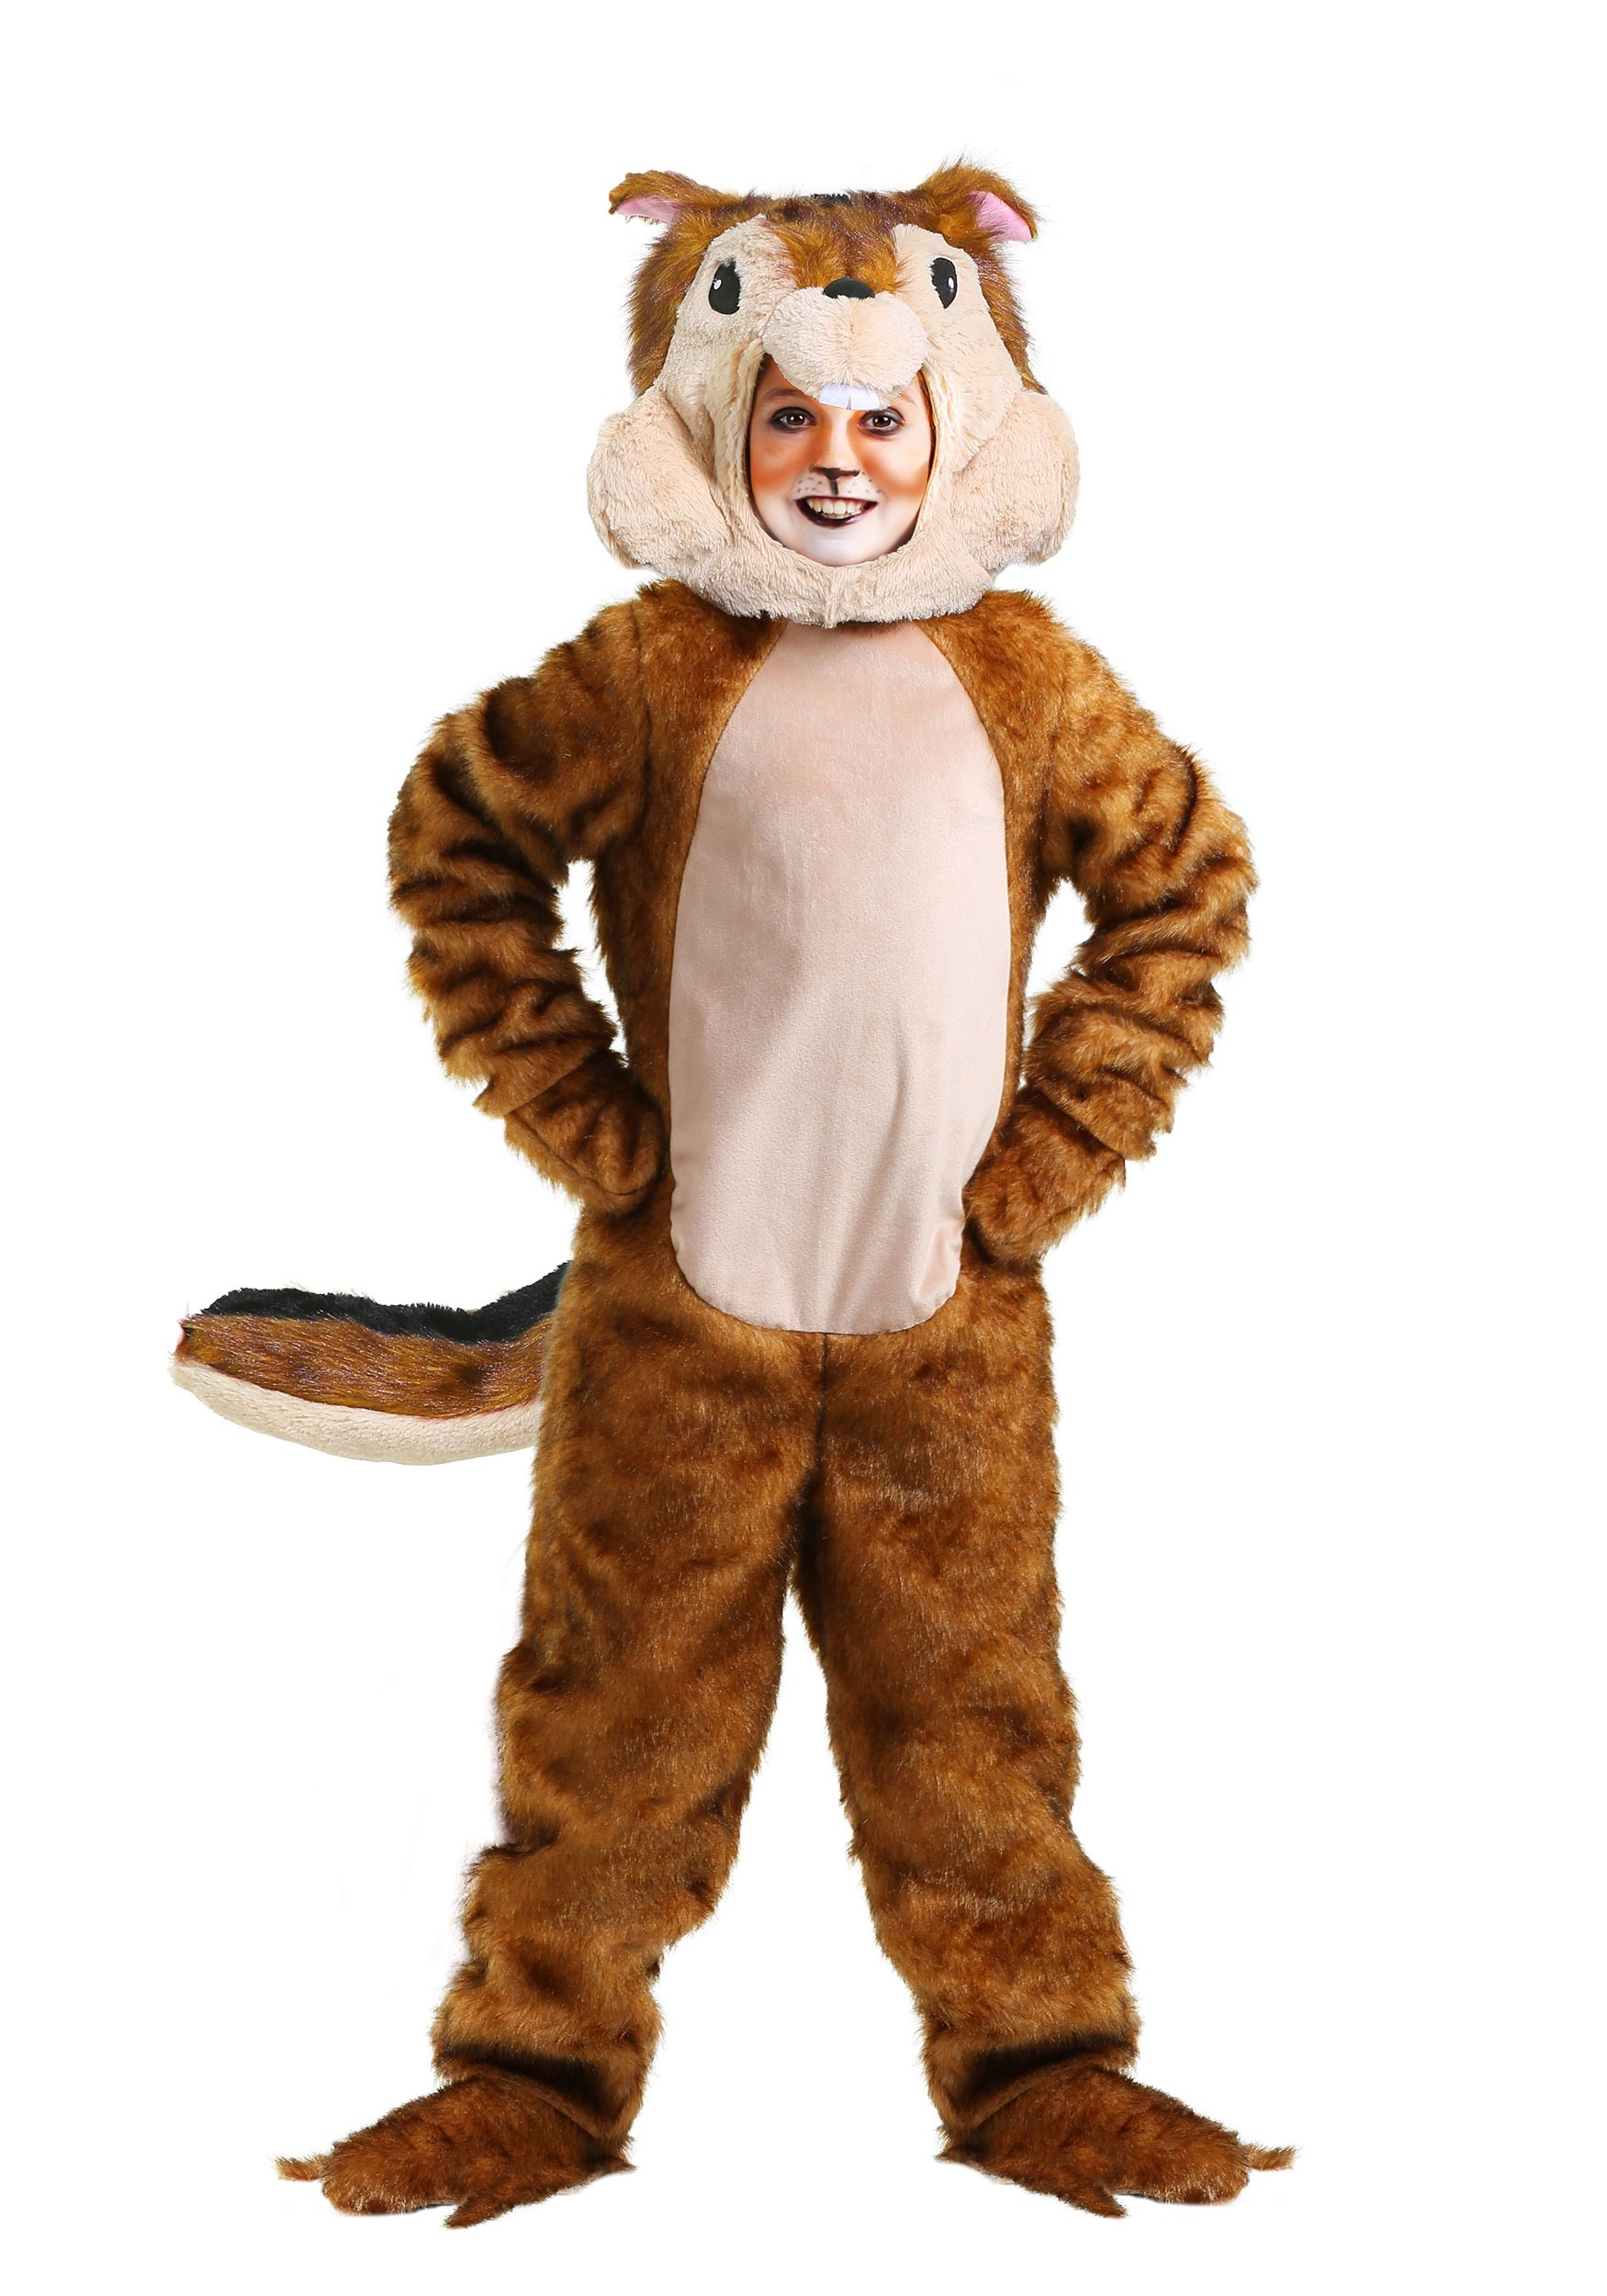 Chipmunk Costume for a Child